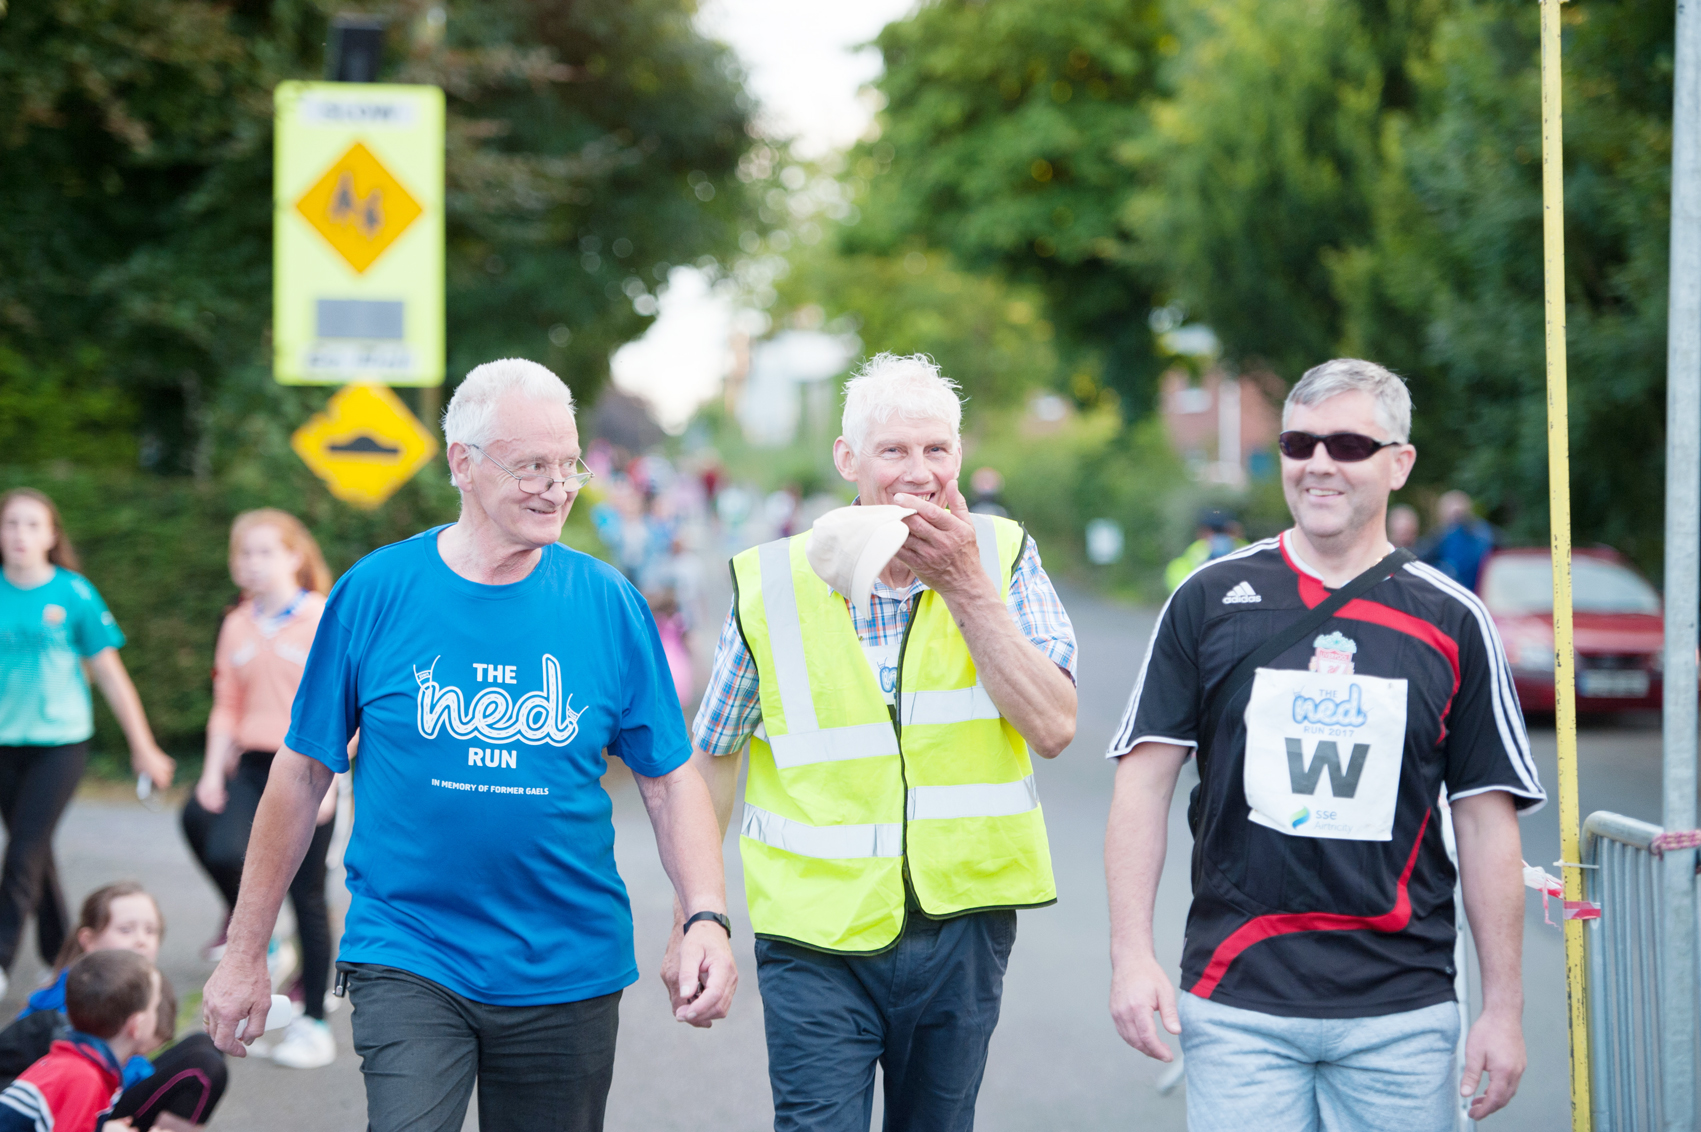 Matt McCrudden, Oliver McNally and Stephen Brannigan, as they finished The Ned Run in Scotstown. ©Rory Geary/The Northern Standard